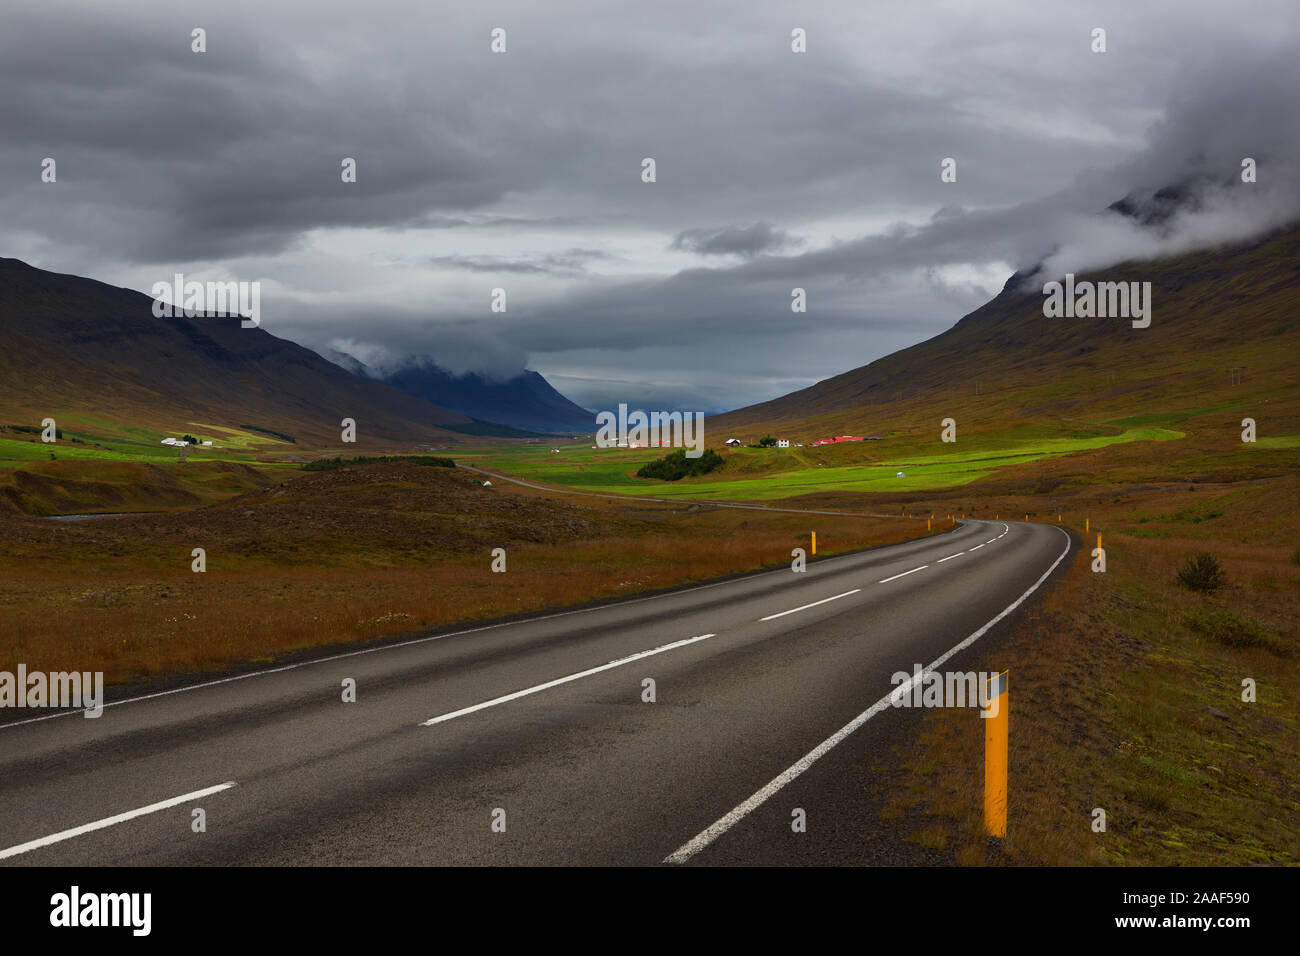 Icelandic ring road highway 1 through mountains area, Iceland Stock Photo